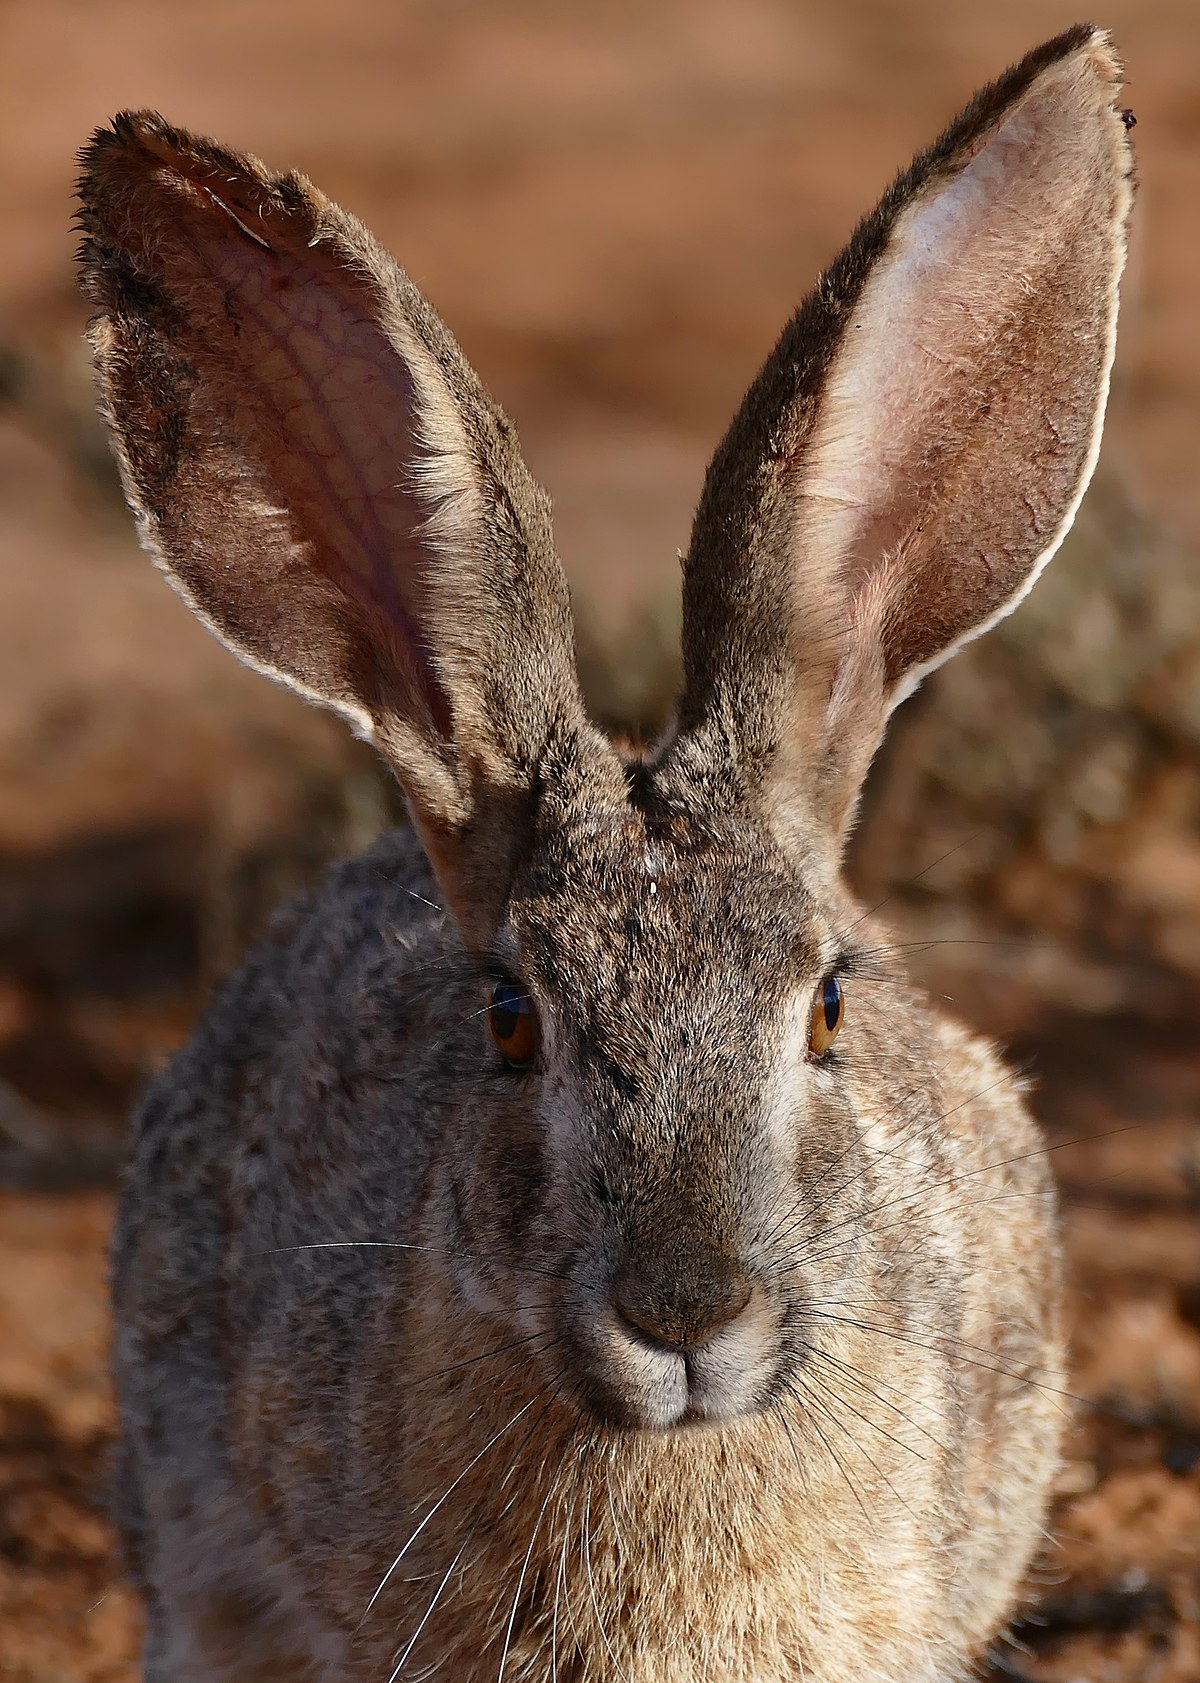 Hare-hare: photo and description where it lives and what it feeds on 93